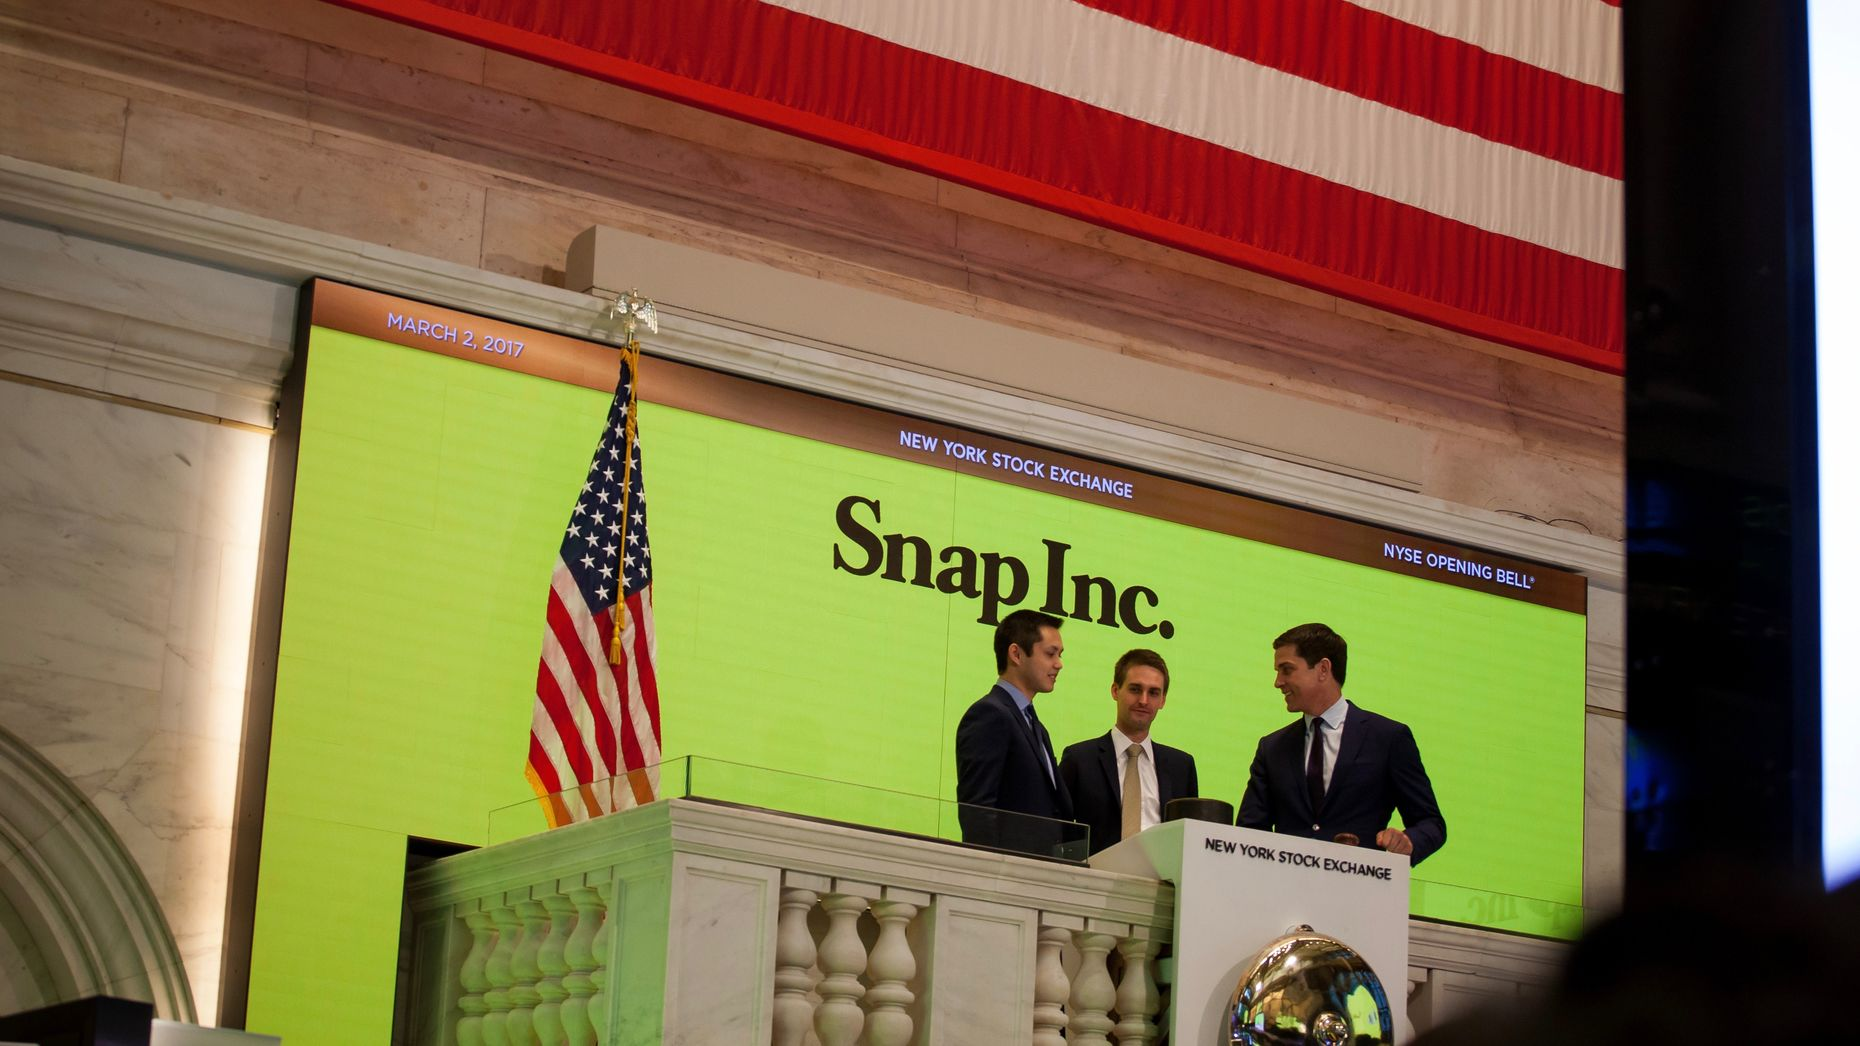 Snap co-founders Robert Murphy and Evan Spiegel at the New York Stock Exchange on Snap's IPO day, with NYSE President Tom Farley. Photo by Bloomberg.